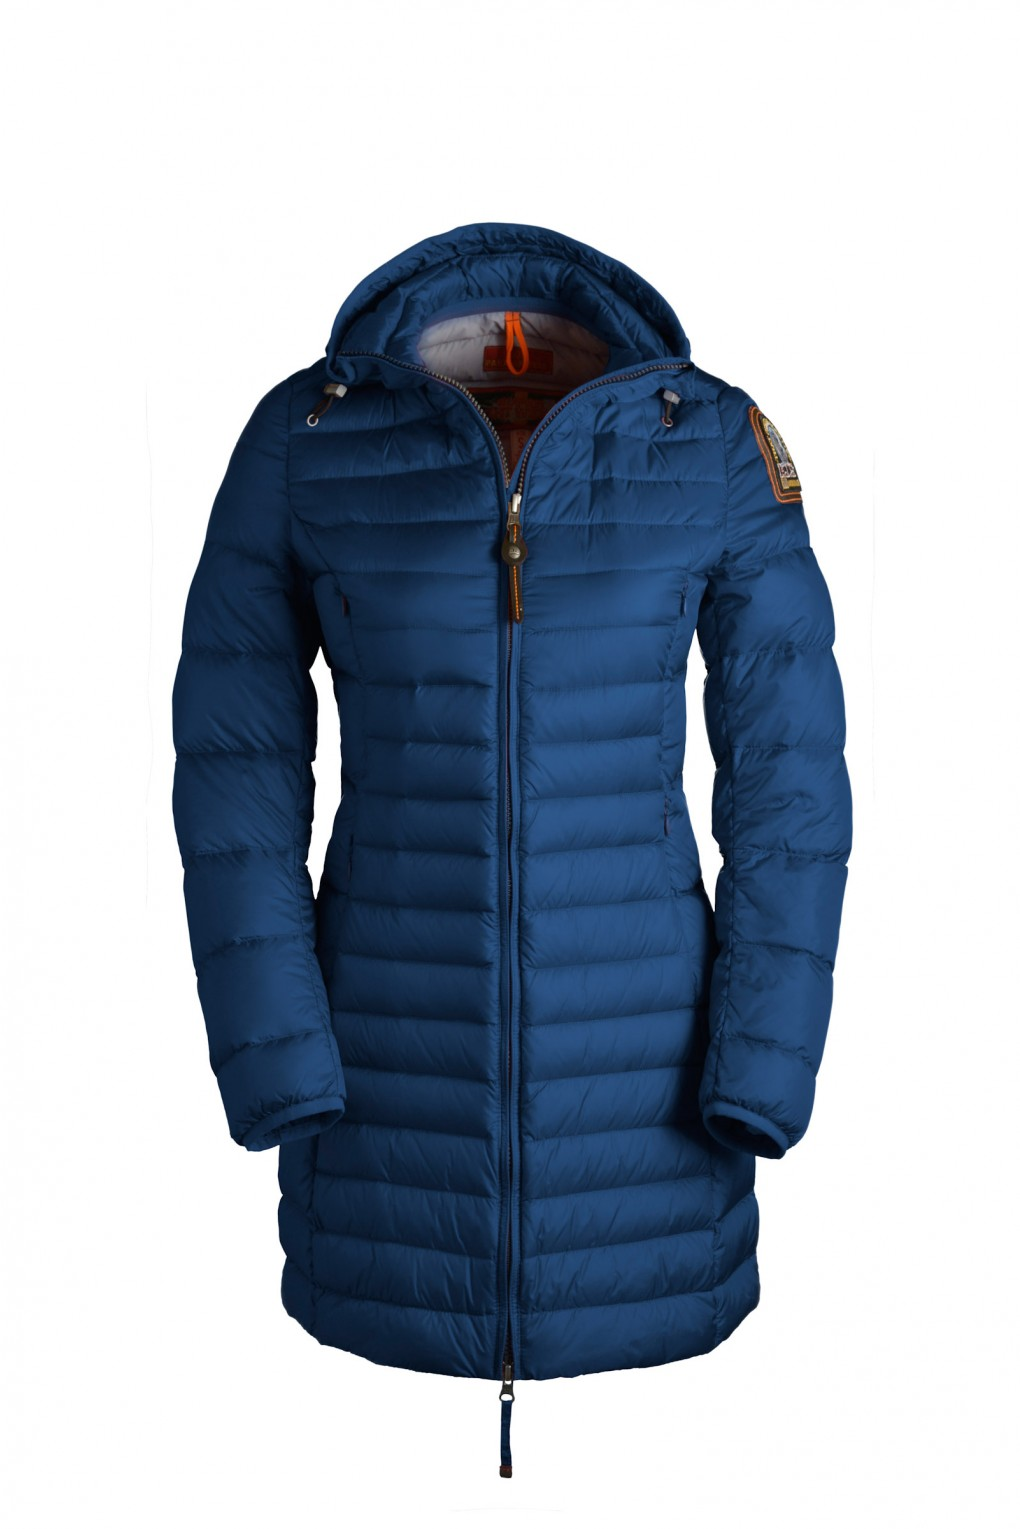 parajumpers IRENE6 woman outerwear Ocean